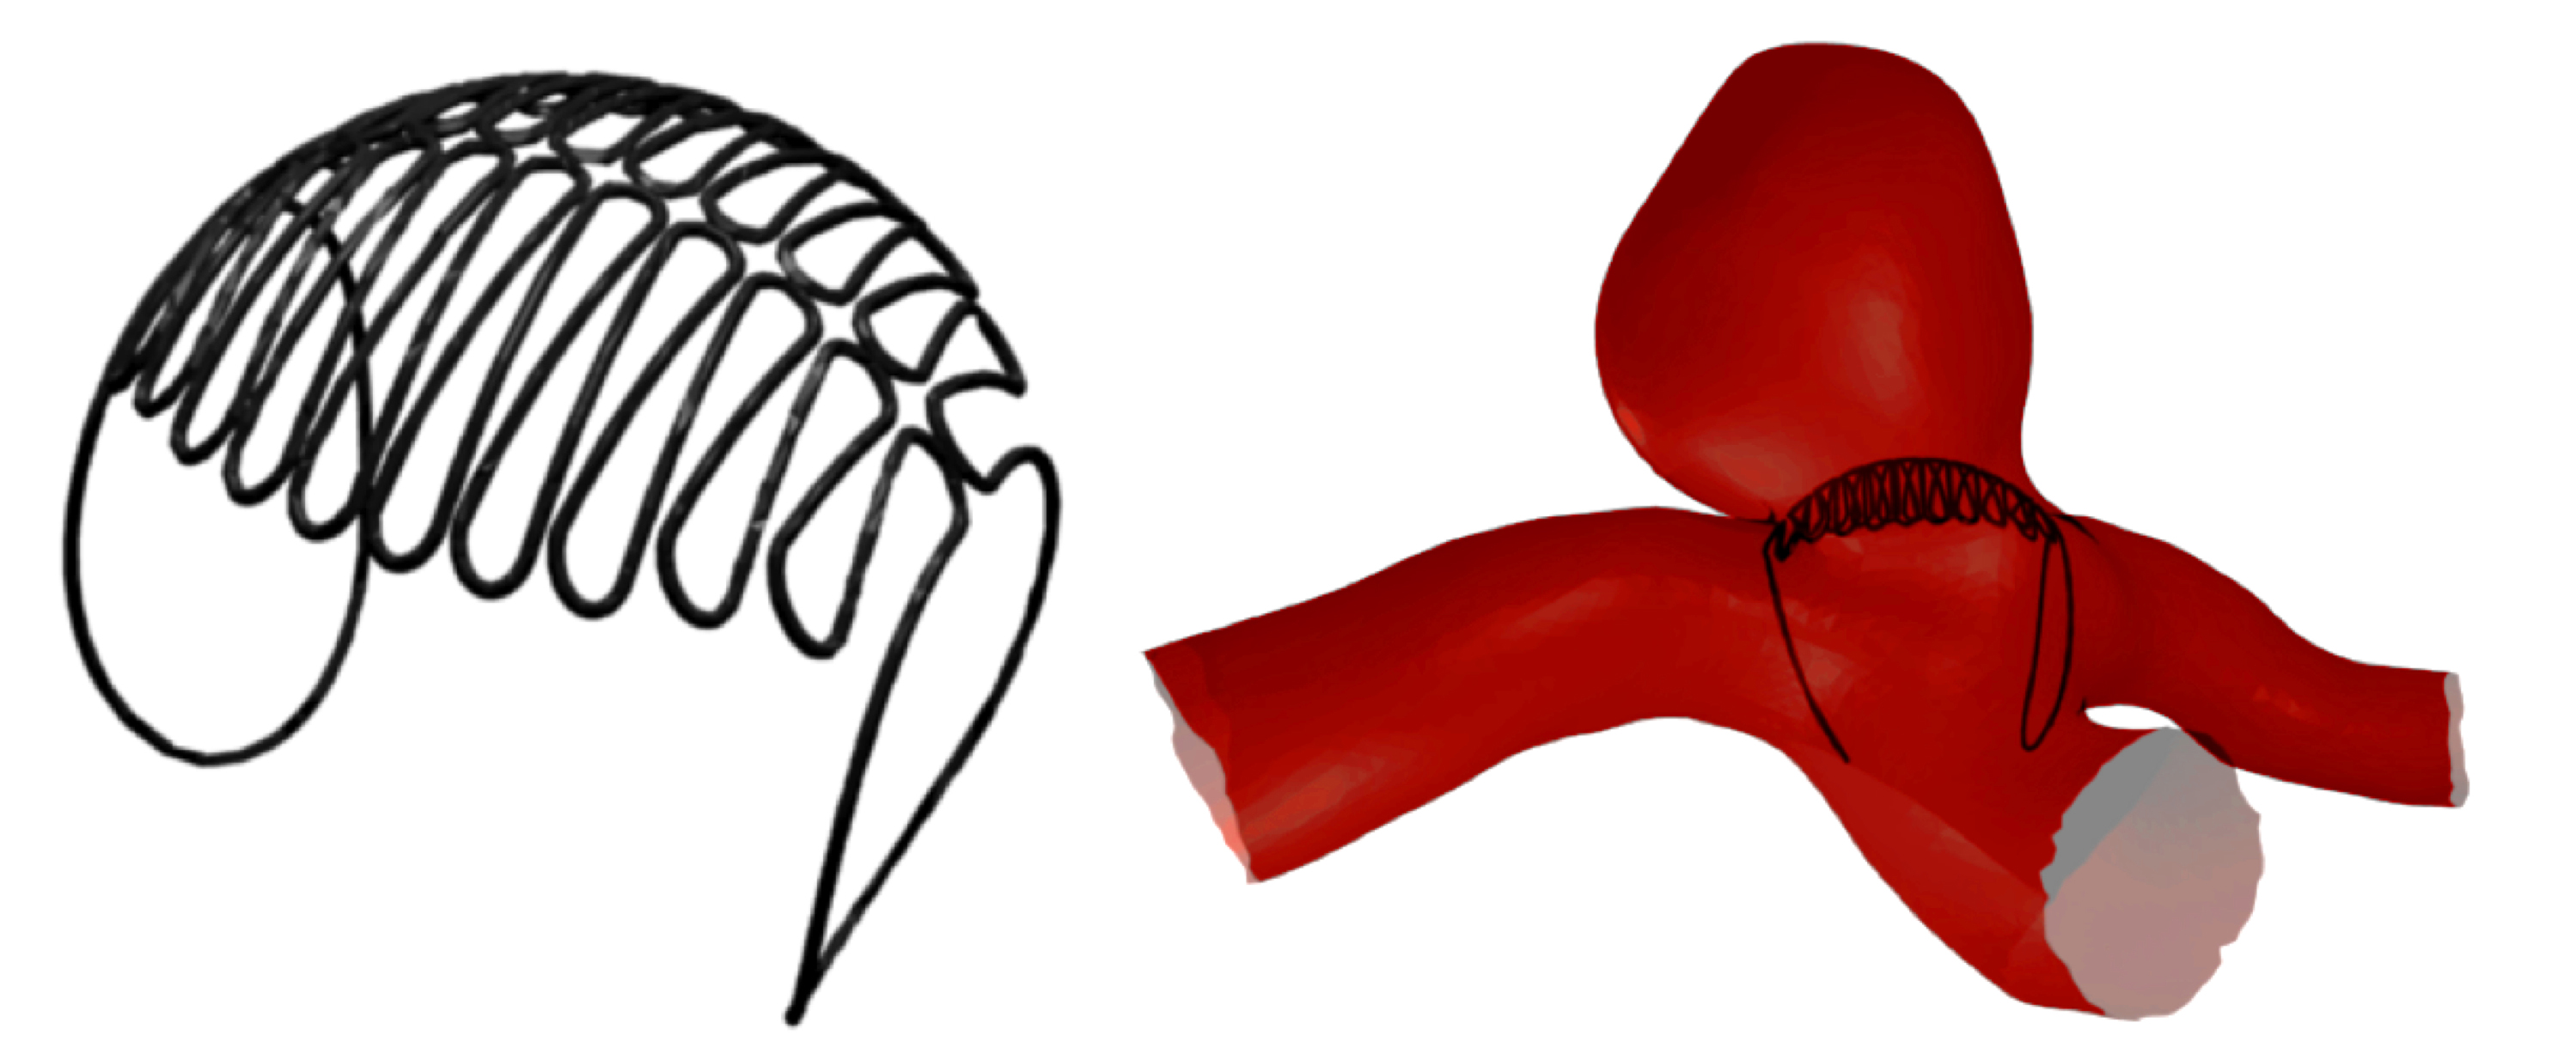 Sphere Device (Left) and Sphere deployed in a Bifurcation Aneurysm (Right)